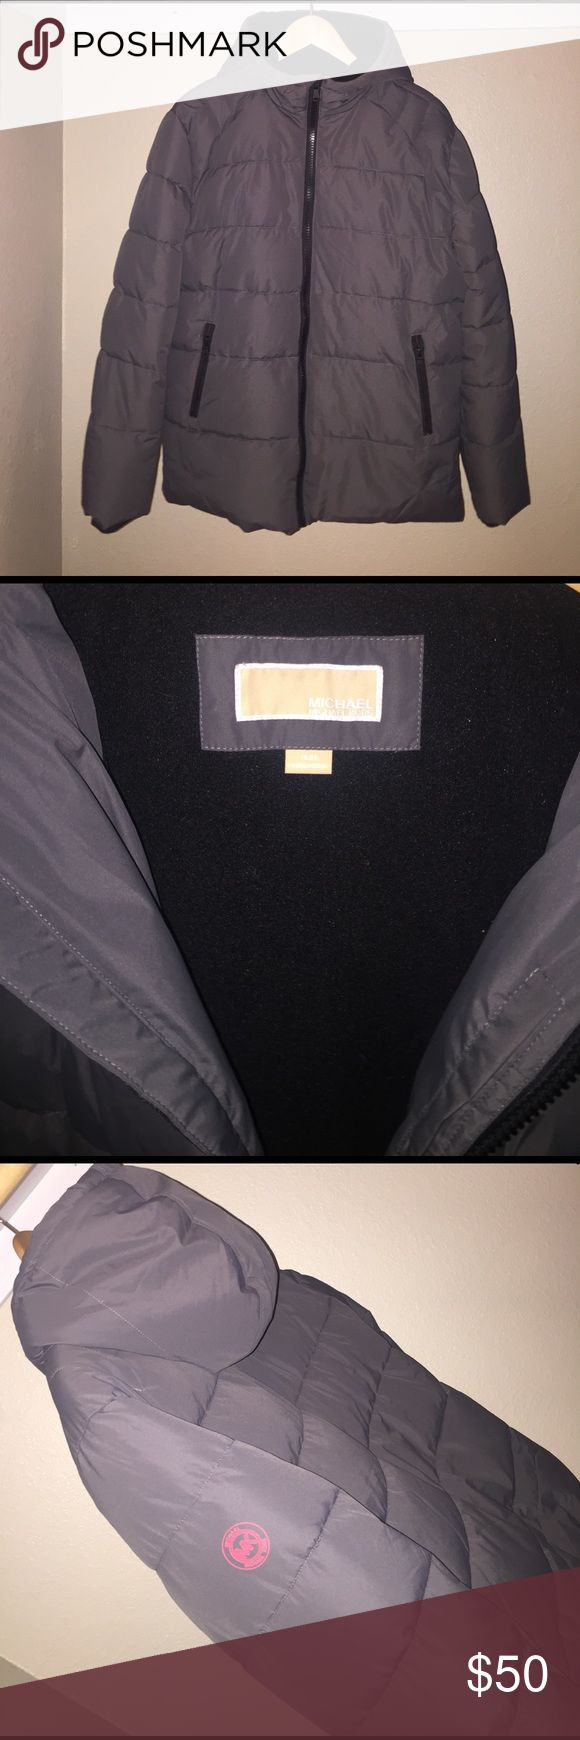 Michael Kors Boys/Guys puffer coat Michael Kors sz. 18/20 Boys/Guys puffer coat in grey. Fleece lining with down alternative fill and rayon and polyester shell. Very nice coat. Only worn once, zero damage. Grew out already! Tweens... smh. MICHAEL Michael Kors Jackets & Coats Puffers